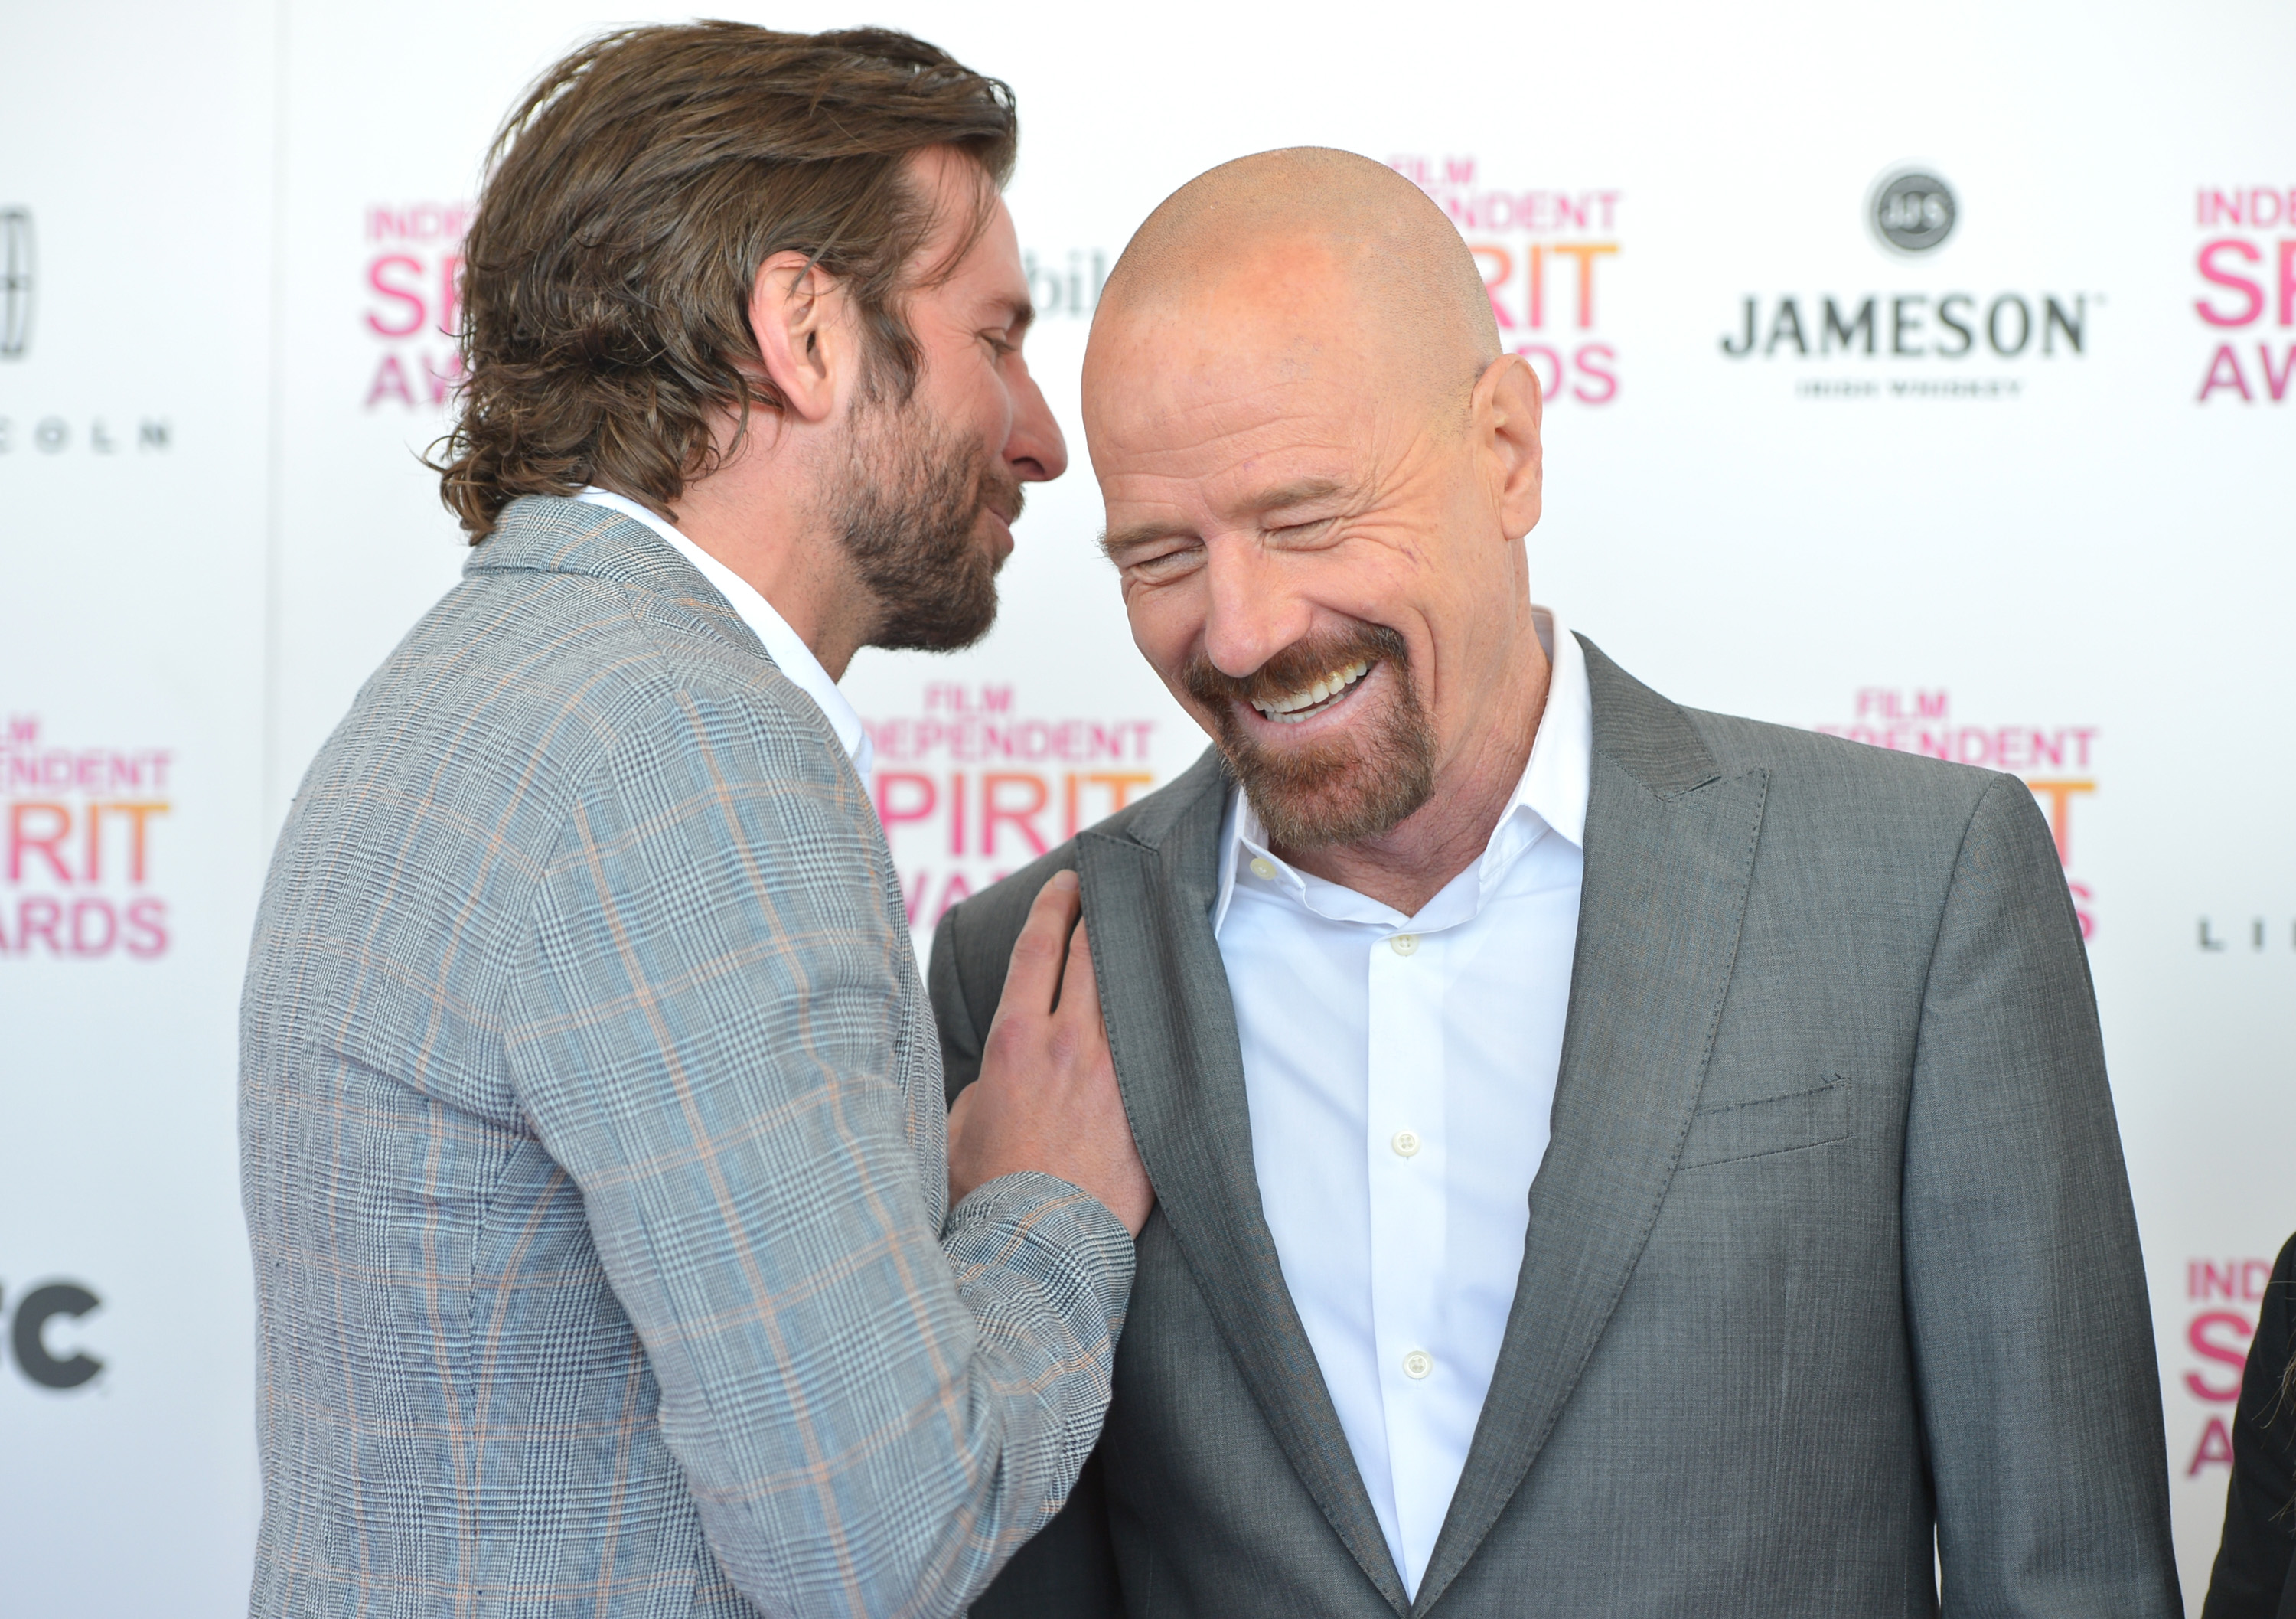 Bradley Cooper chatted with Bryan Cranston before the Spirit Awards.